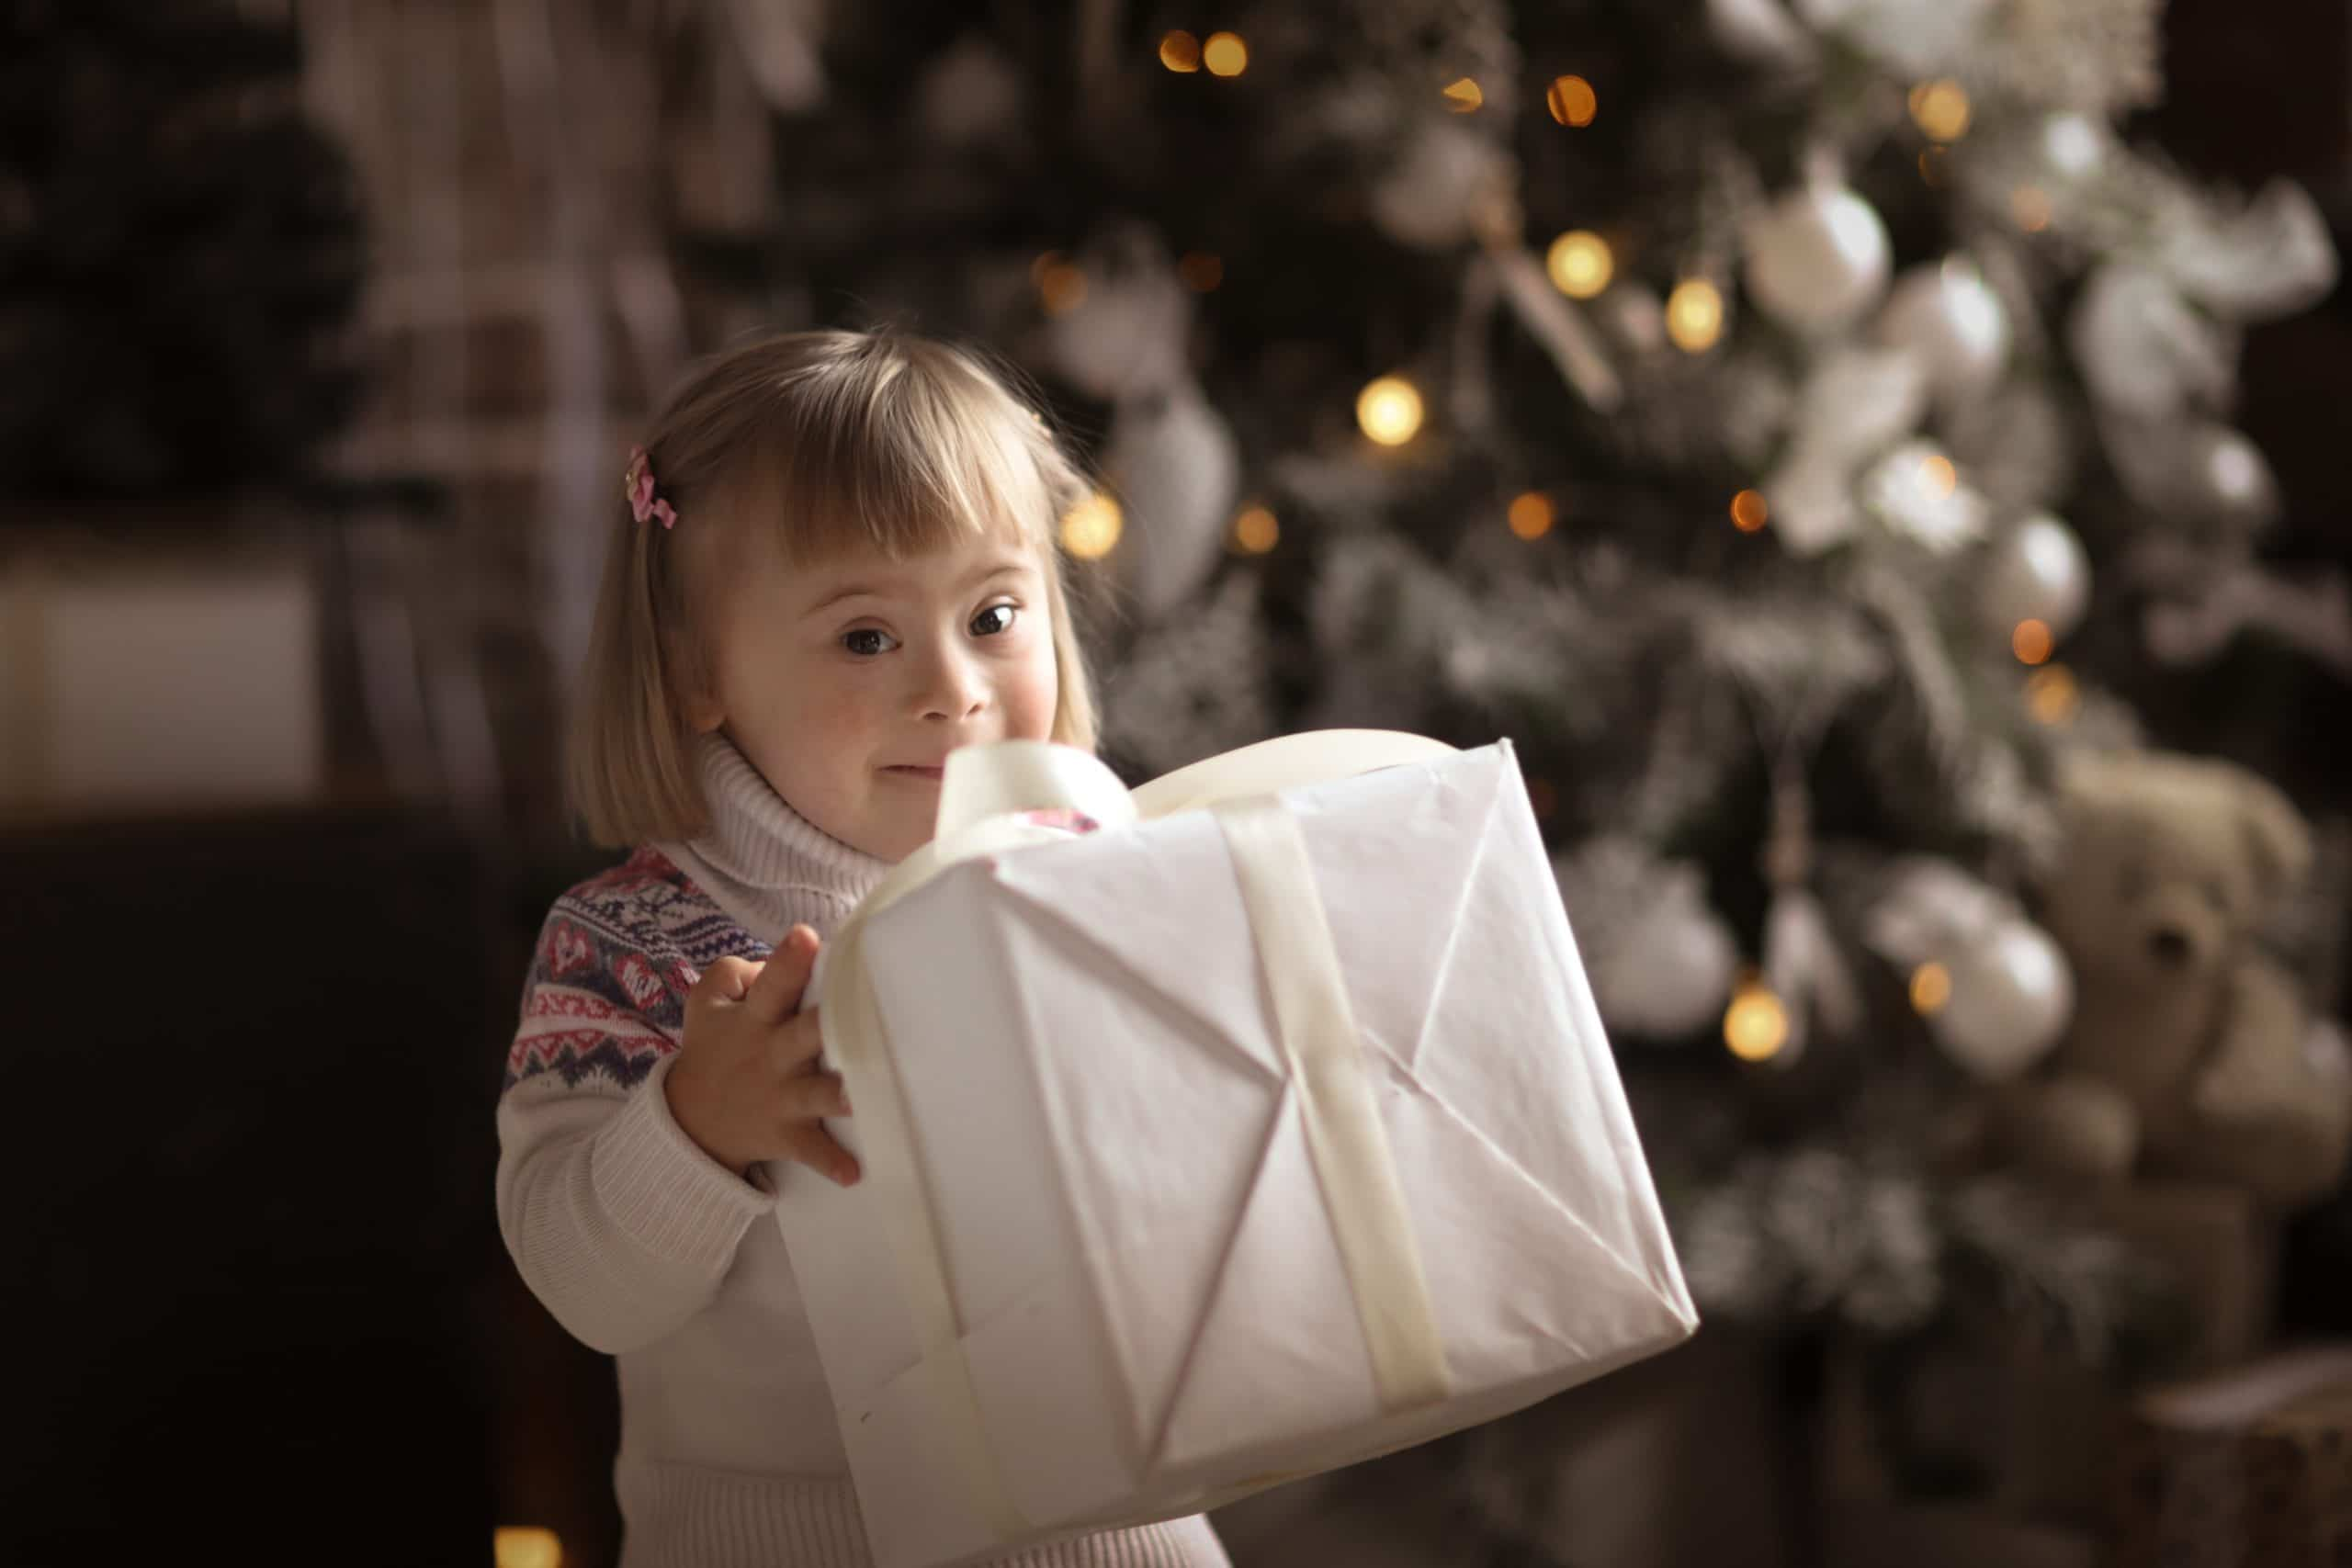 Young Girl with Christmas Present next to a Christmas Tree